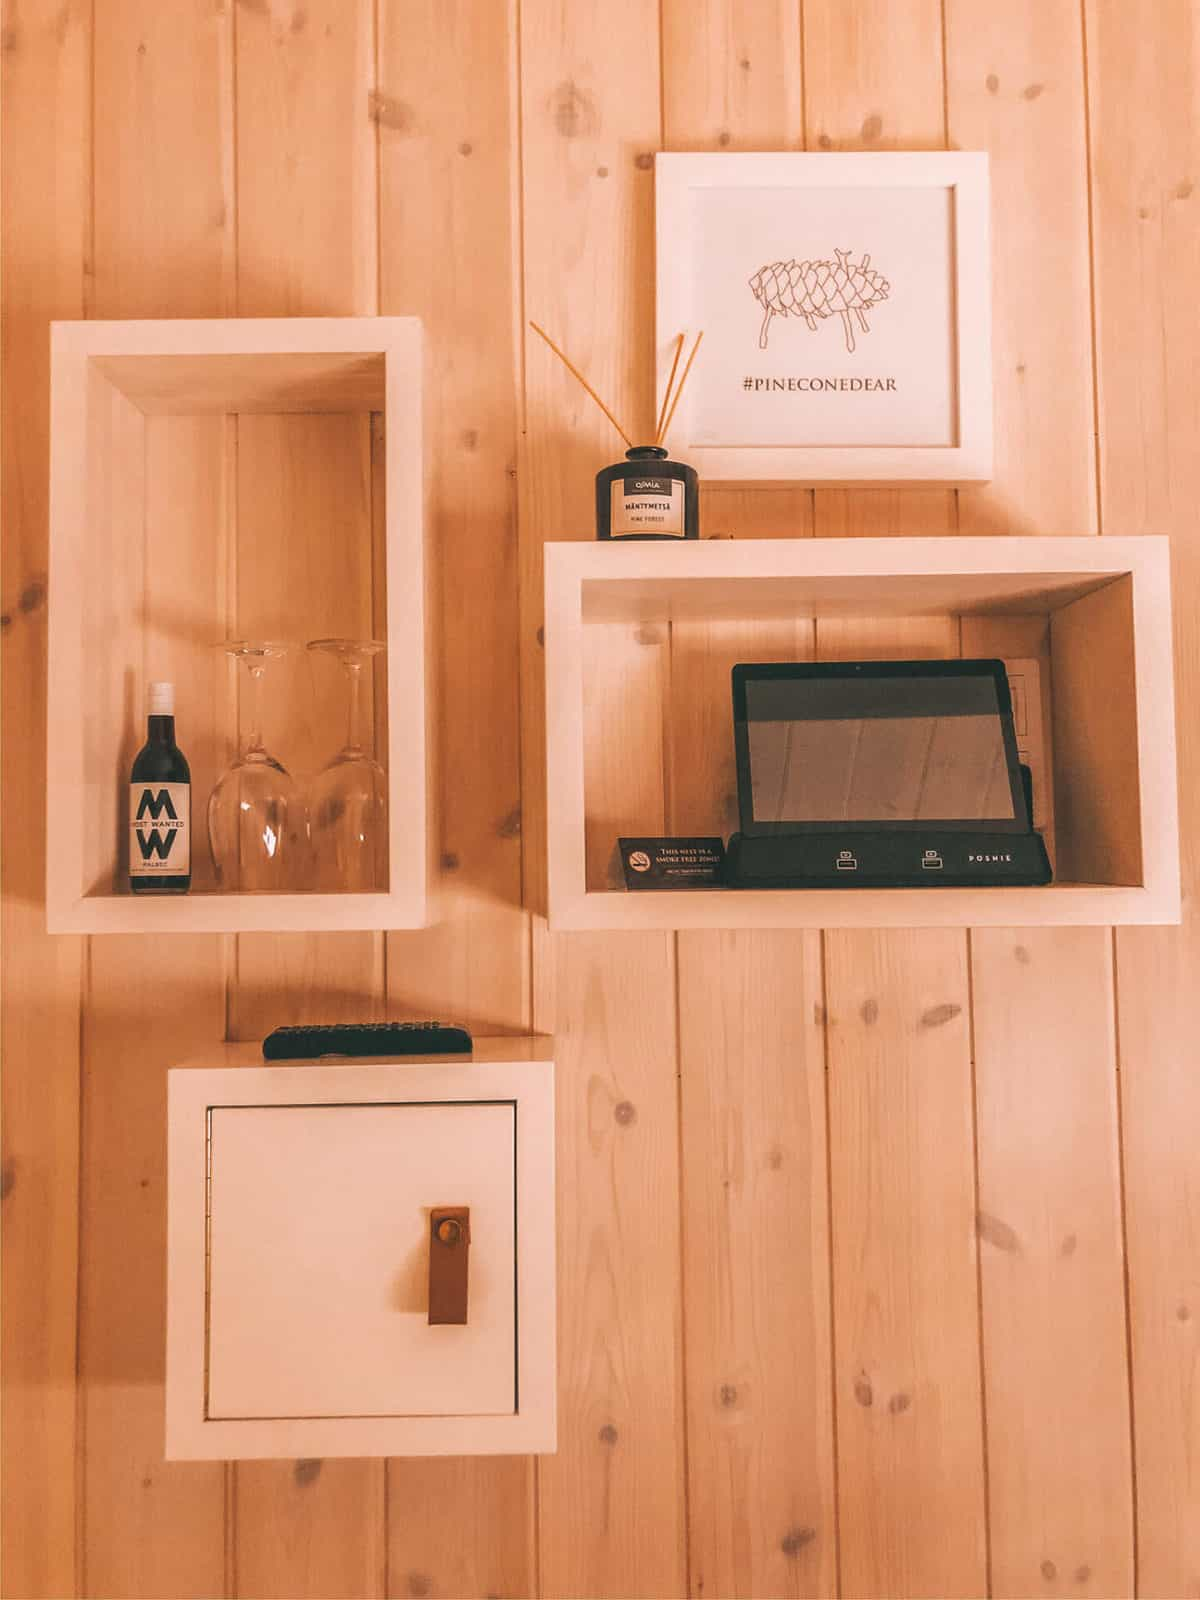 Floating boxes on a wall with a tablet, wine and wine glasses and a painting